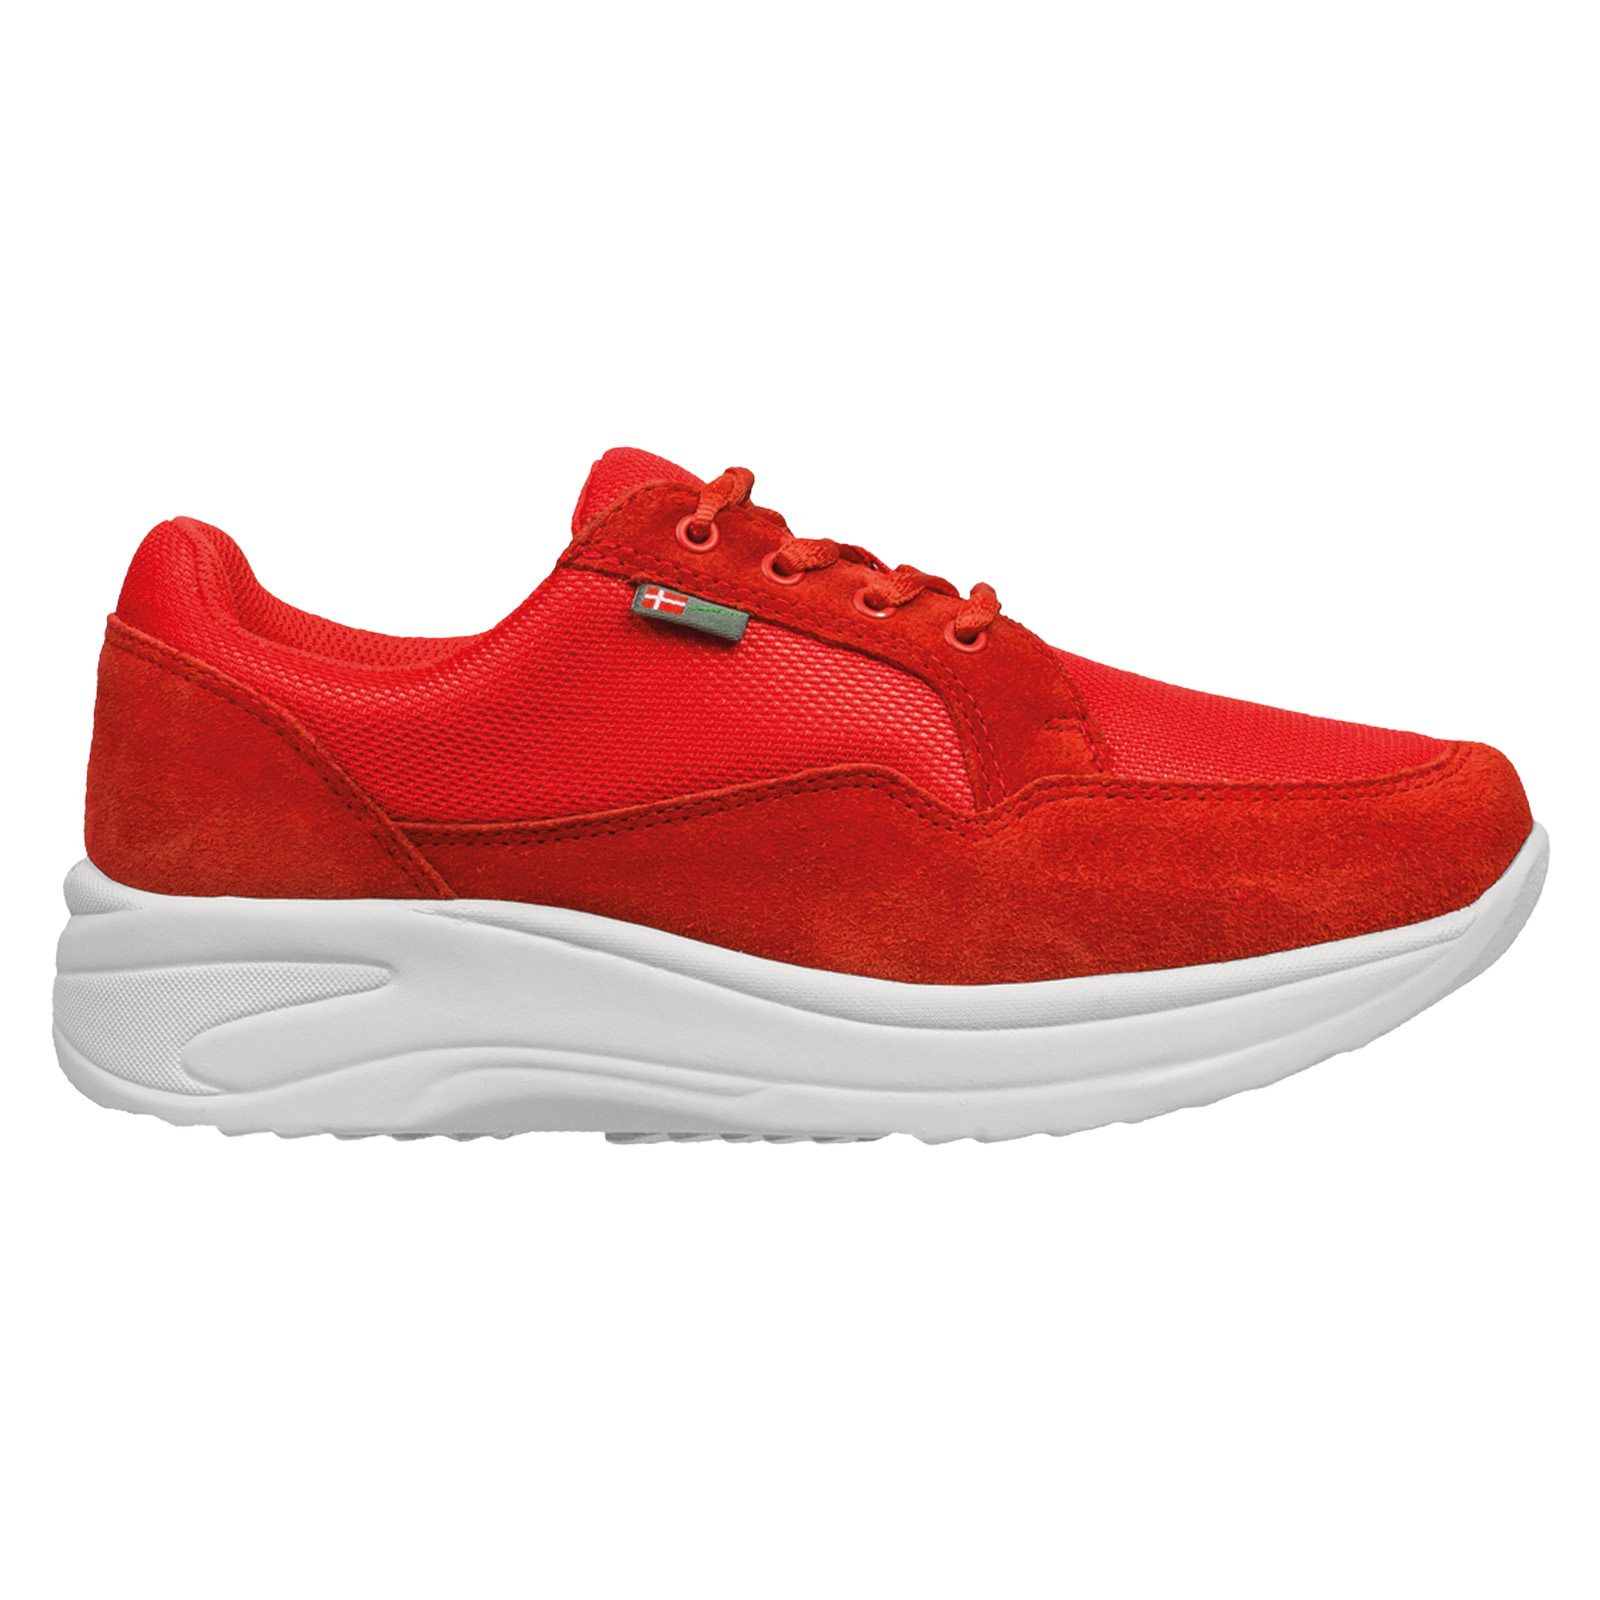 1033-006-1 Wallin Flex 3D-mesh/suede red/red white dames comfortsneaker